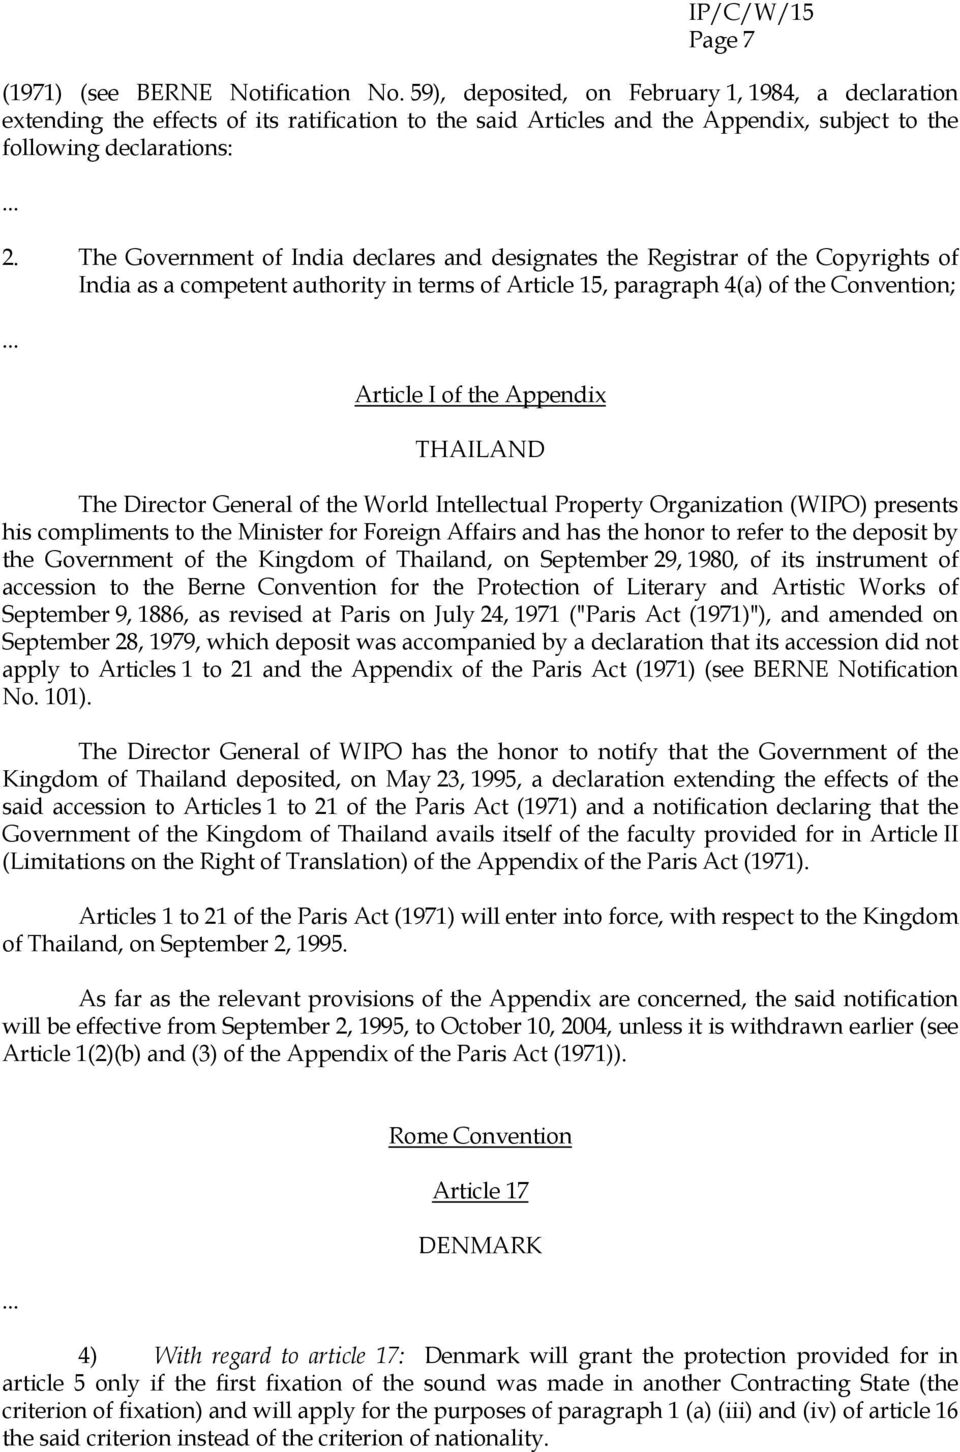 The Government of India declares and designates the Registrar of the Copyrights of India as a competent authority in terms of Article 15, paragraph 4(a) of the Convention; Article I of the Appendix